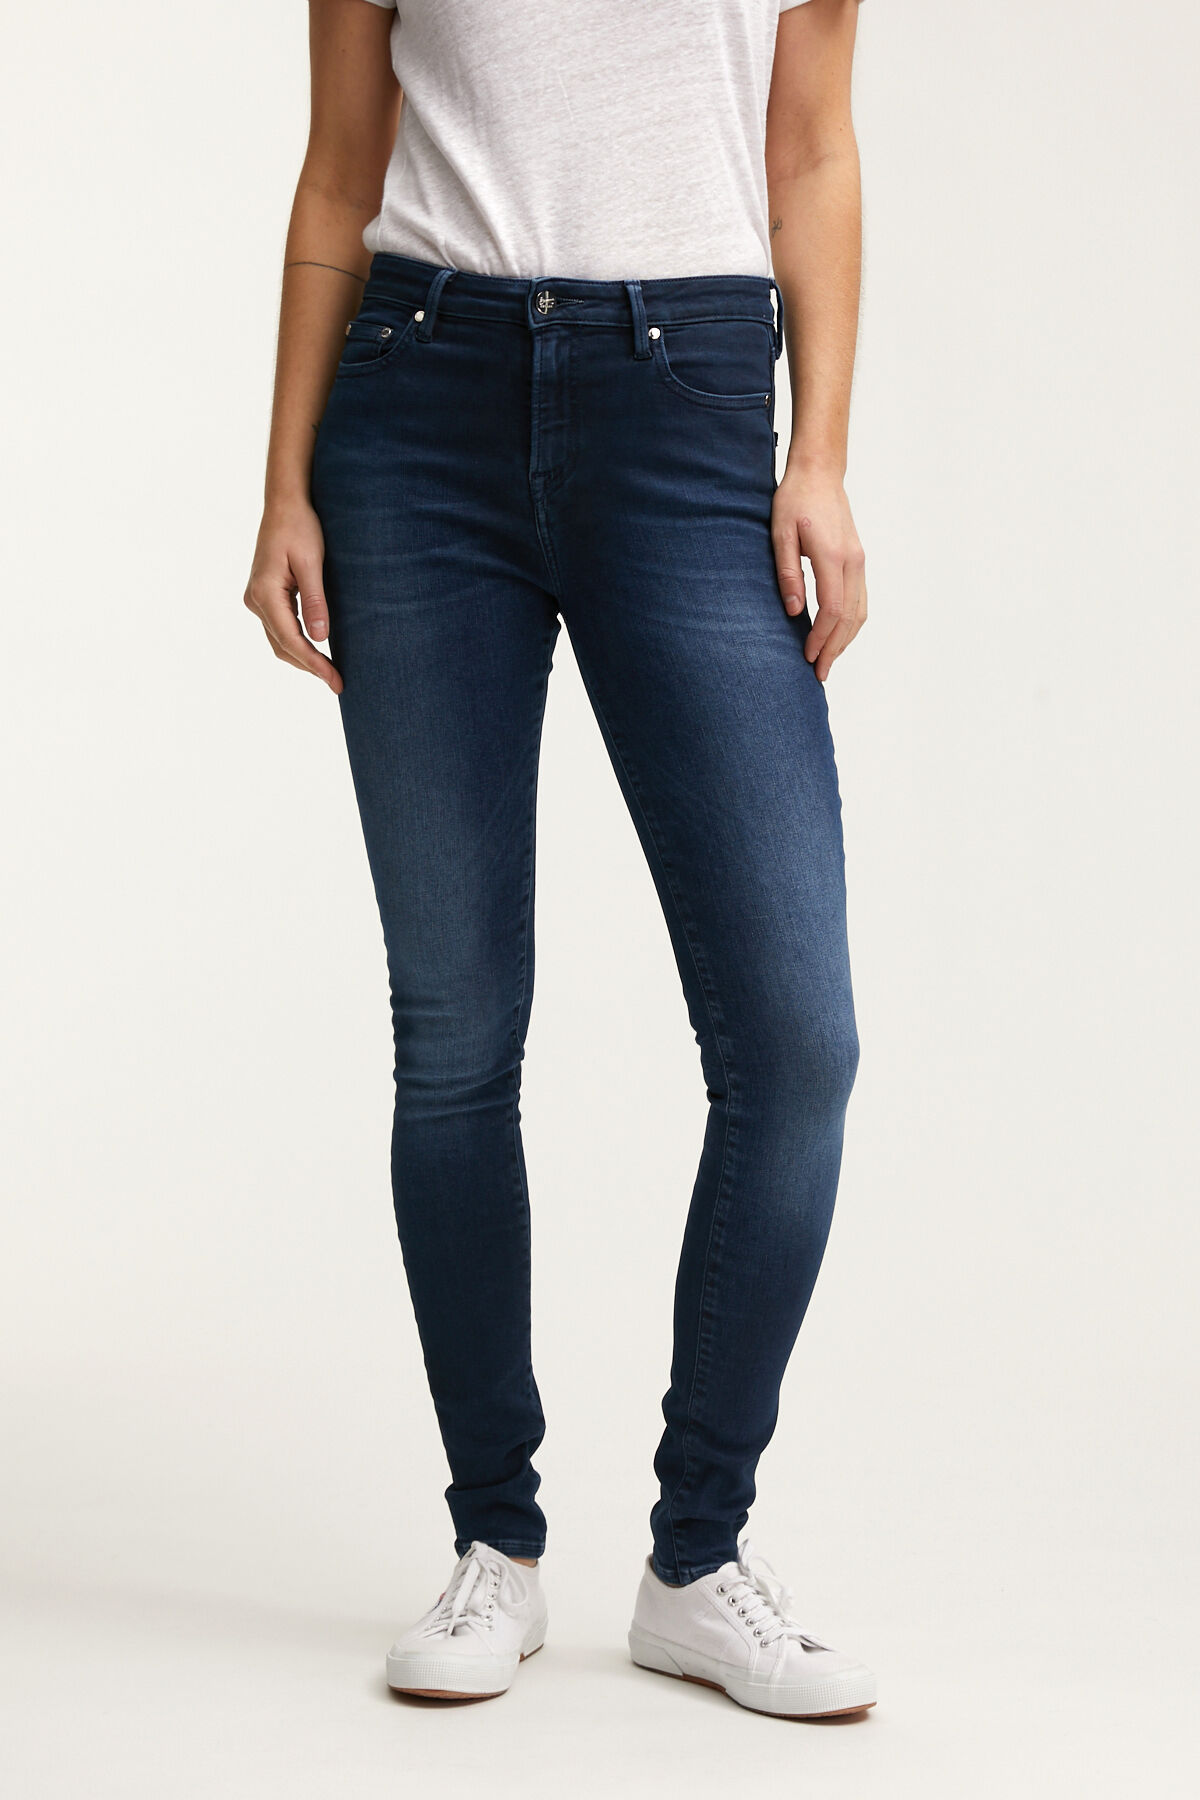 NEEDLE Three-Year Indigo Denim - High-Rise, Skinny Fit